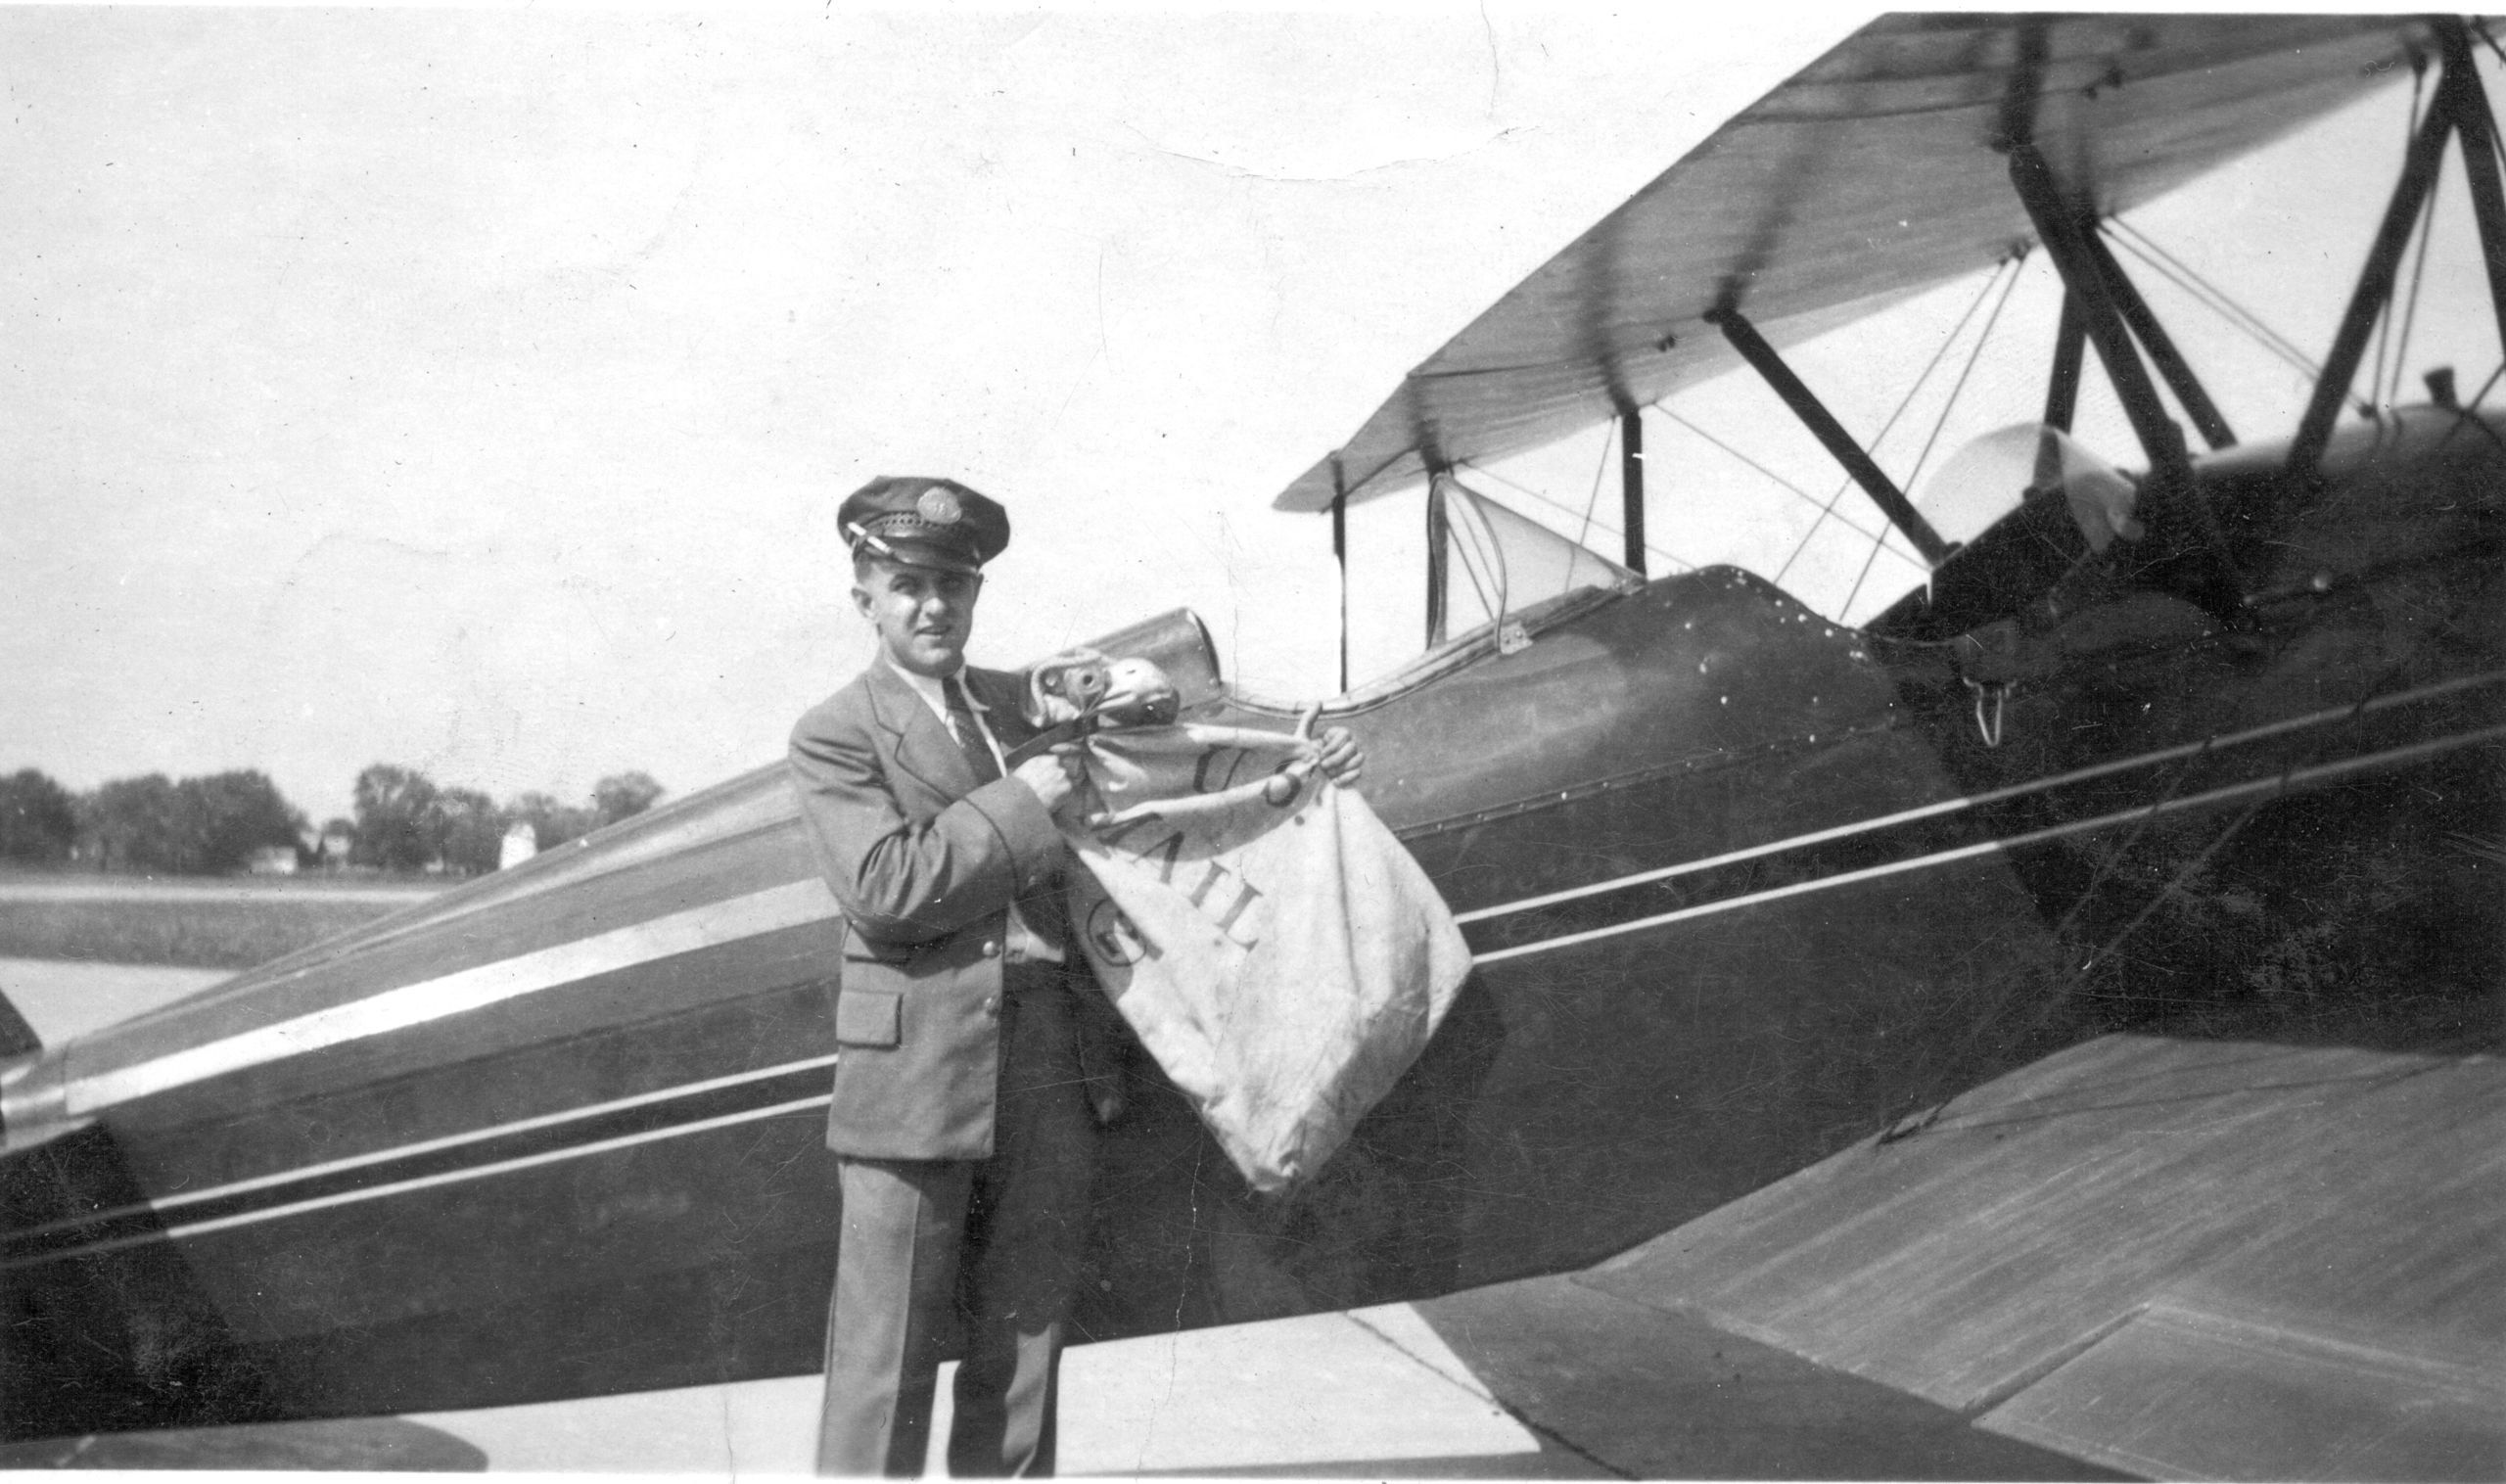 Loading airmail, late 1930s, Detroit